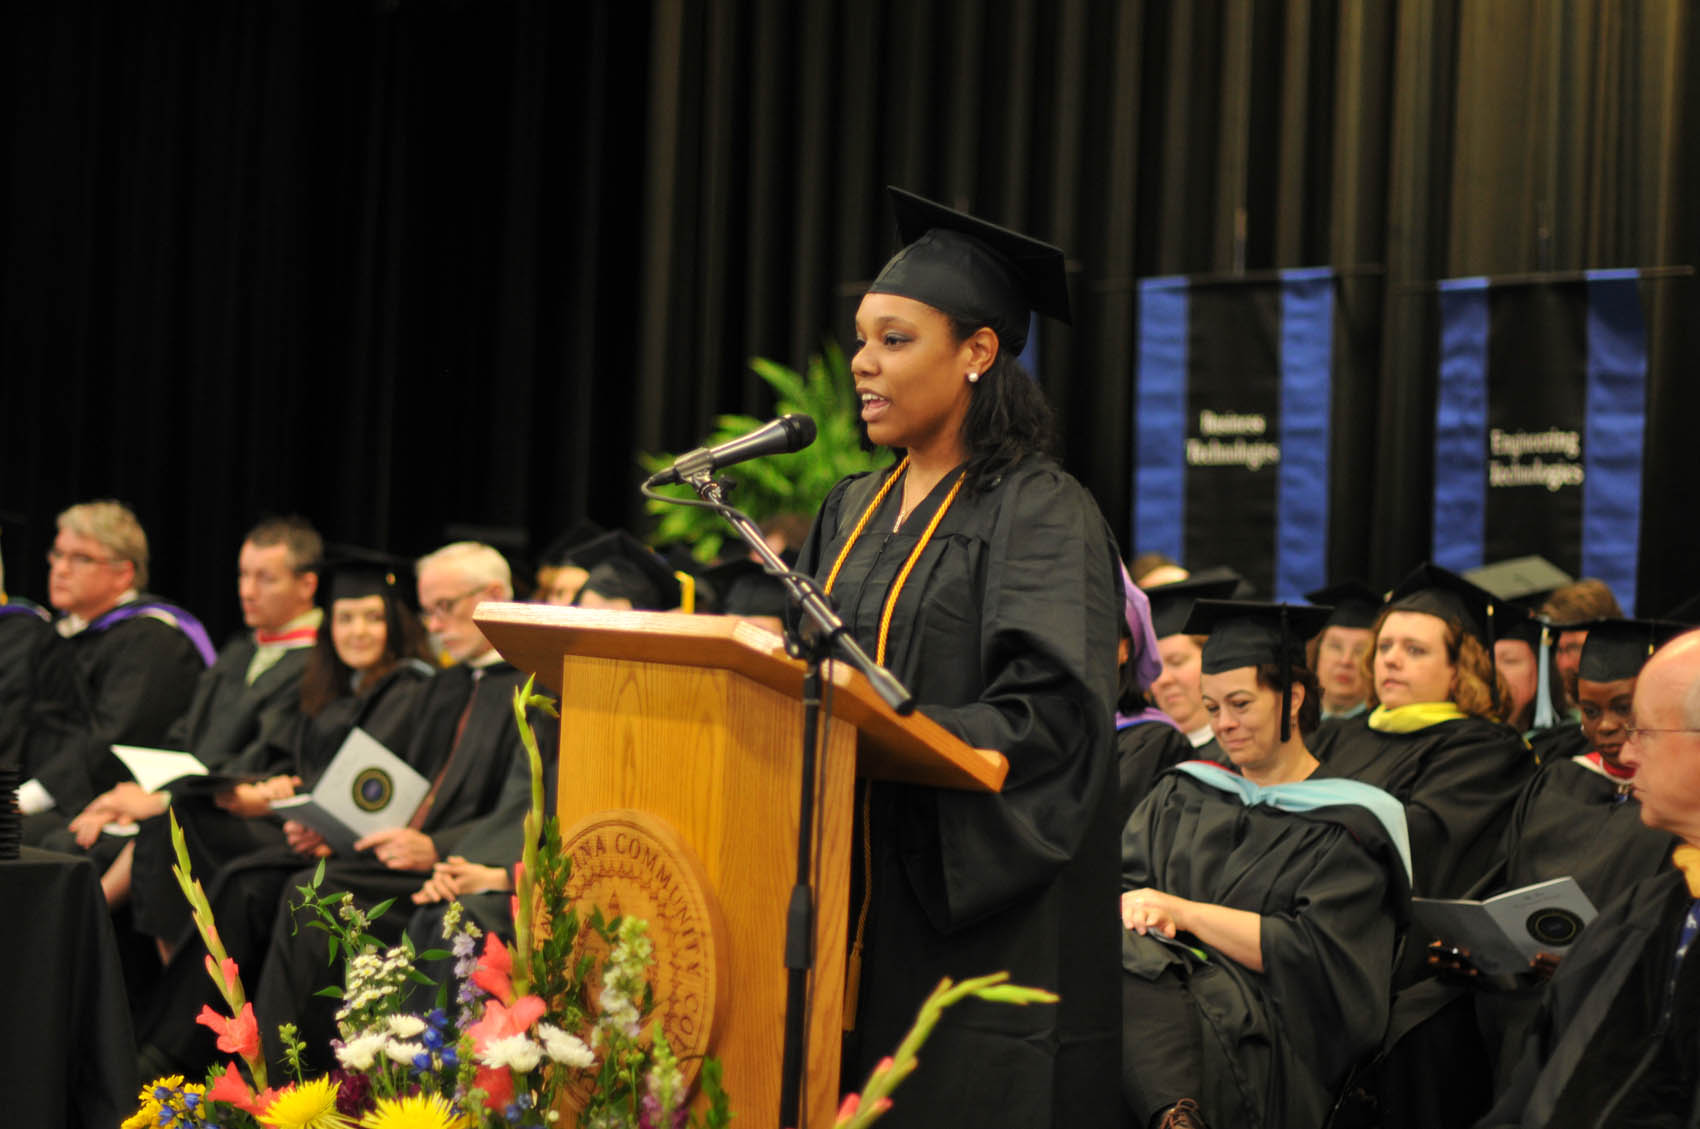 Click to enlarge,  Octavia Brown, a graduate of the Dental Hygiene program, was the student speaker at the Central Carolina Community College 9 a.m. commencement exercises held on May 12 at the Dennis A. Wicker Civic Center in Sanford.